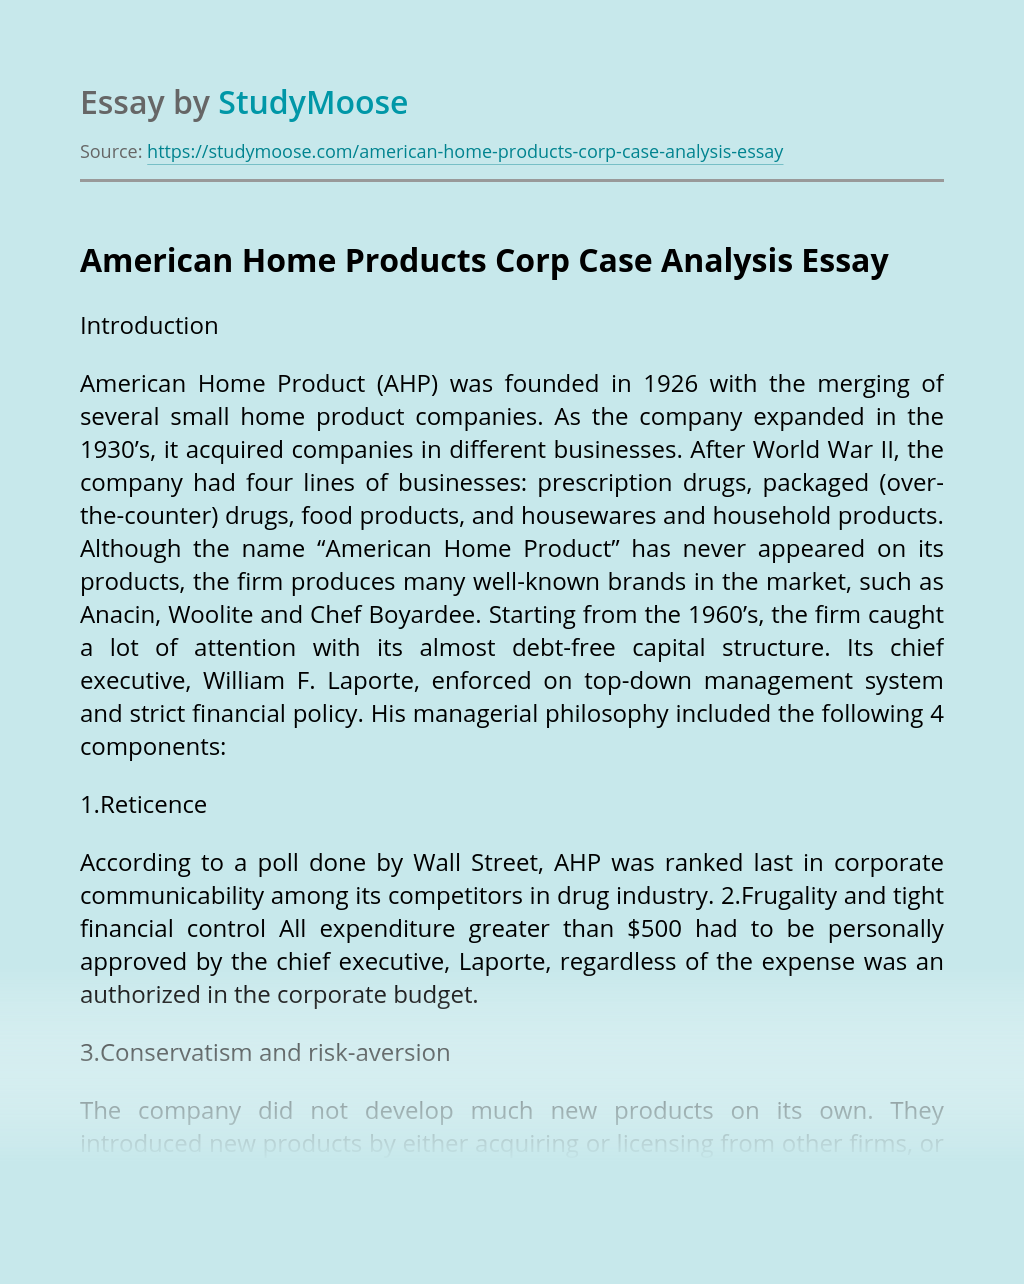 American Home Products Corp Case Analysis